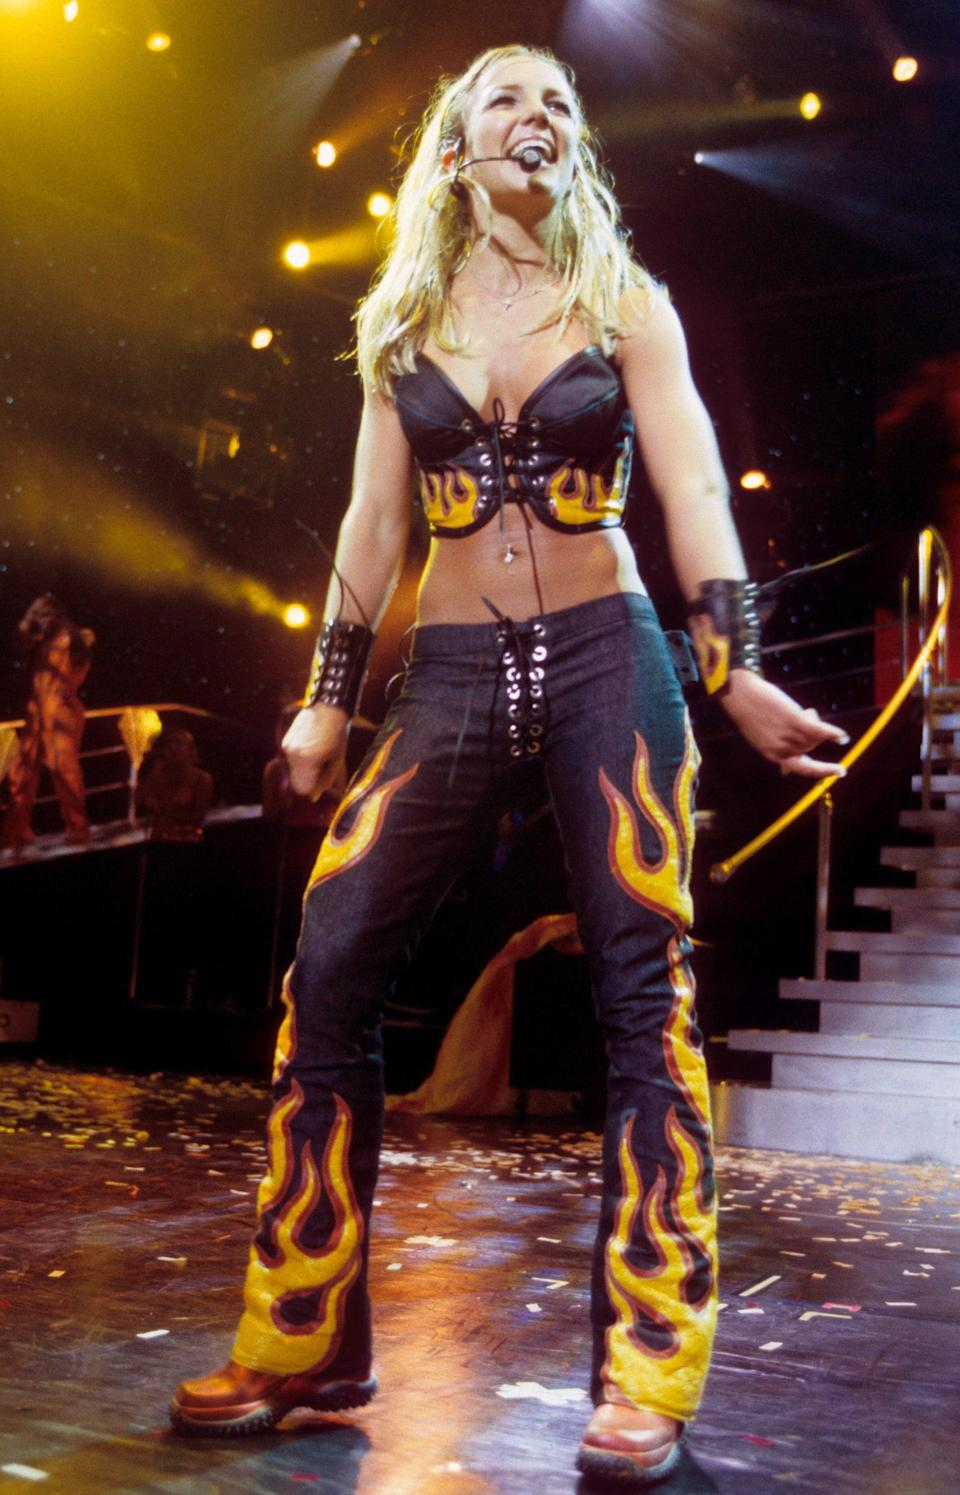 <p>Wearing a flame-print crop top and pants while performing on stage.</p>